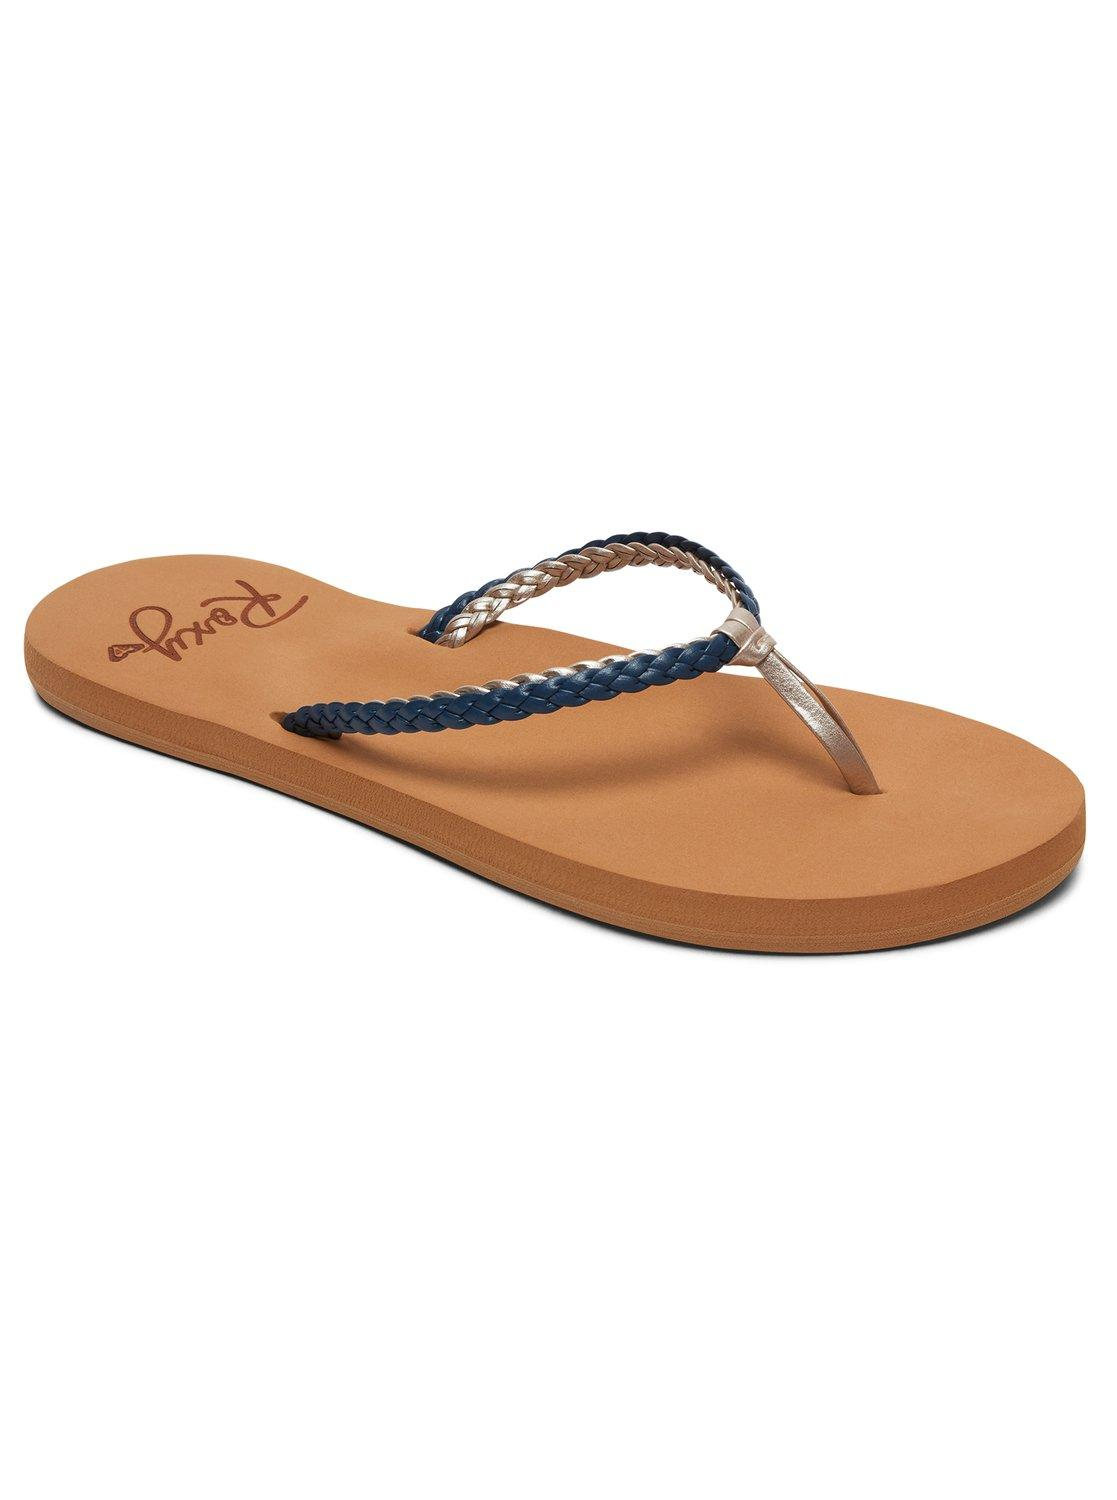 e0be051228ede Roxy Costas Sandal Flip-flop in Blue - Lyst